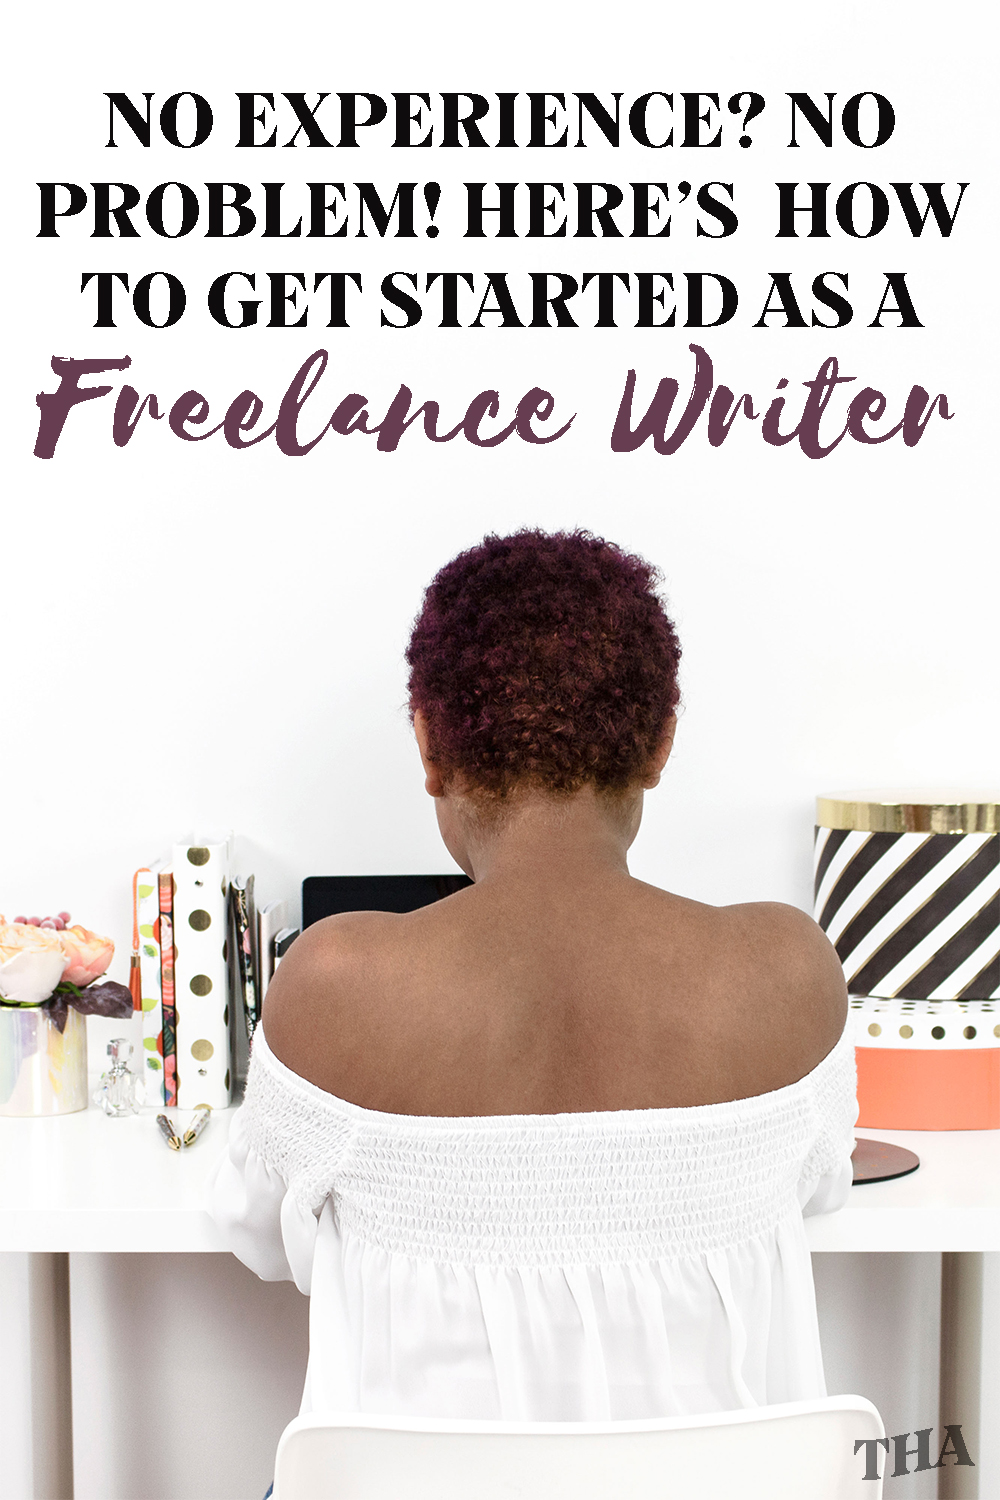 How To Get Started As A Freelance Writer When You Have No Experience | Have you wanted to get into freelance writing but you don't know where to start? Consider this guide a quick start that will get you accepting clients in no time. #Freelancing #Career #FreelanceWriting #FreelanceTips